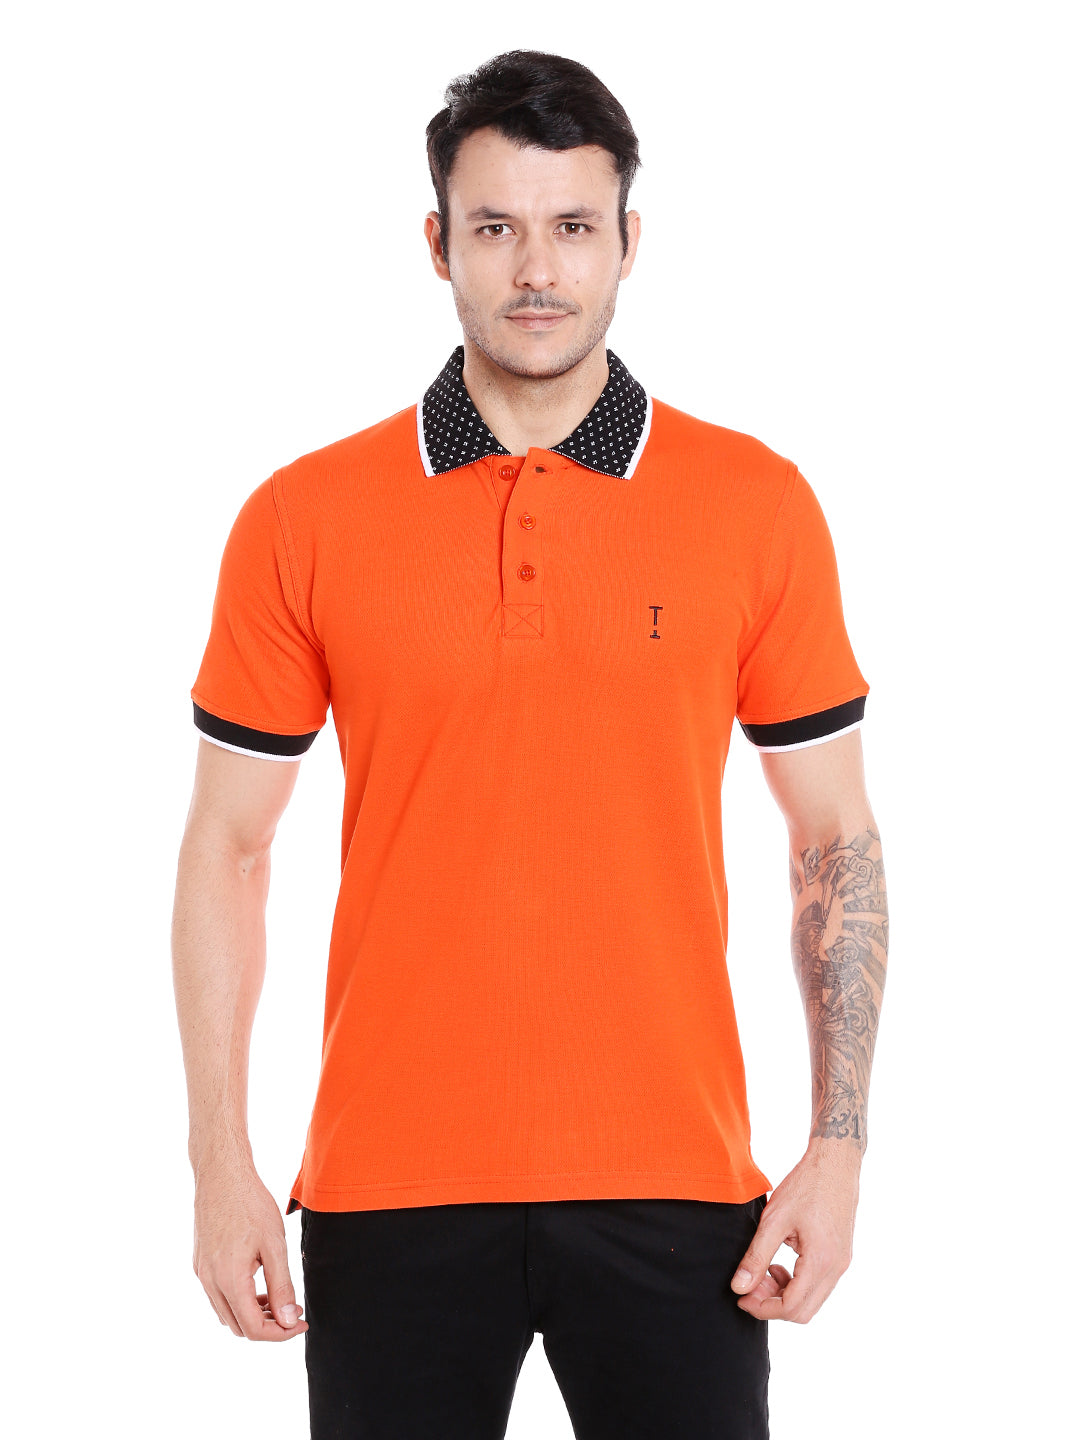 Flame orange polo t-shirt with black jacquard collar